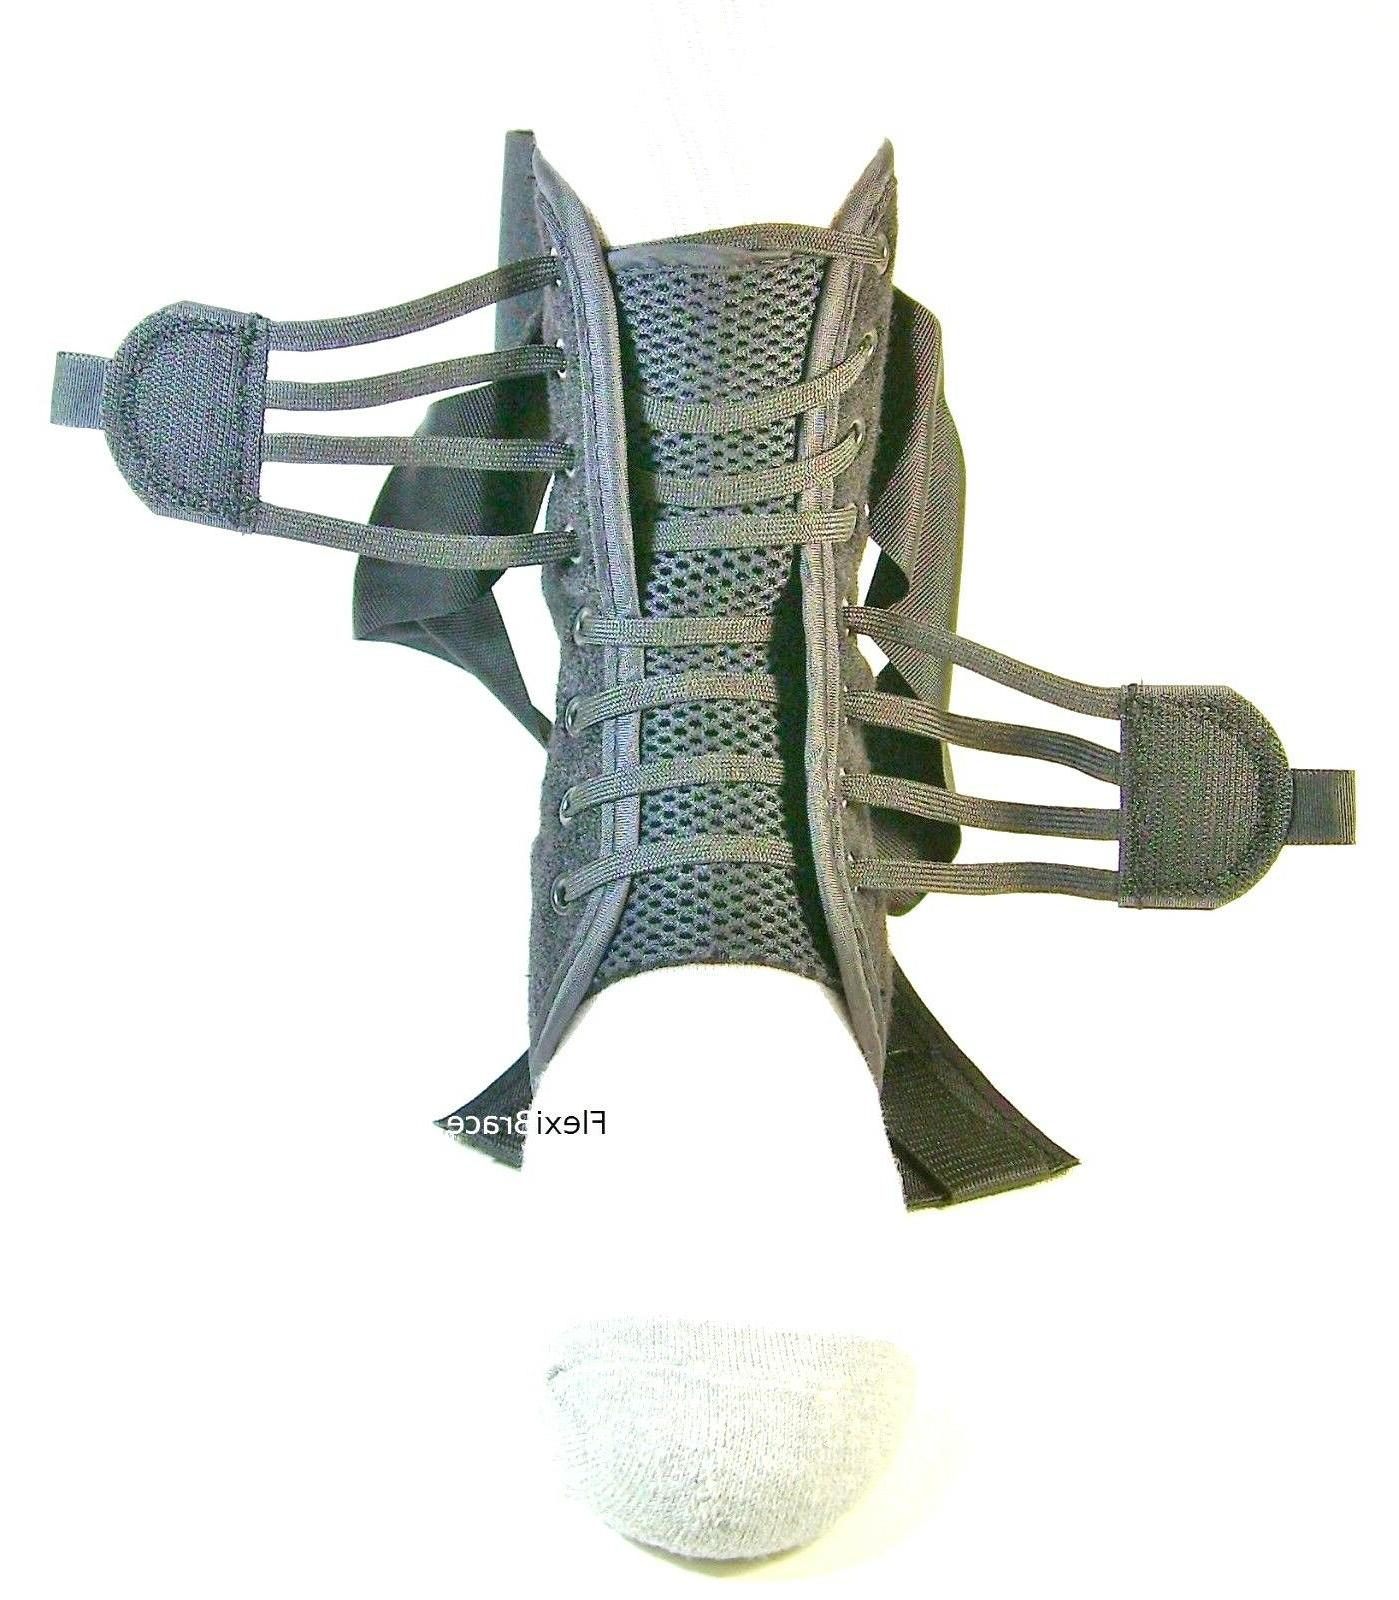 Ankle Brace Support Guard Orthosis FastLacer by Flexibrace